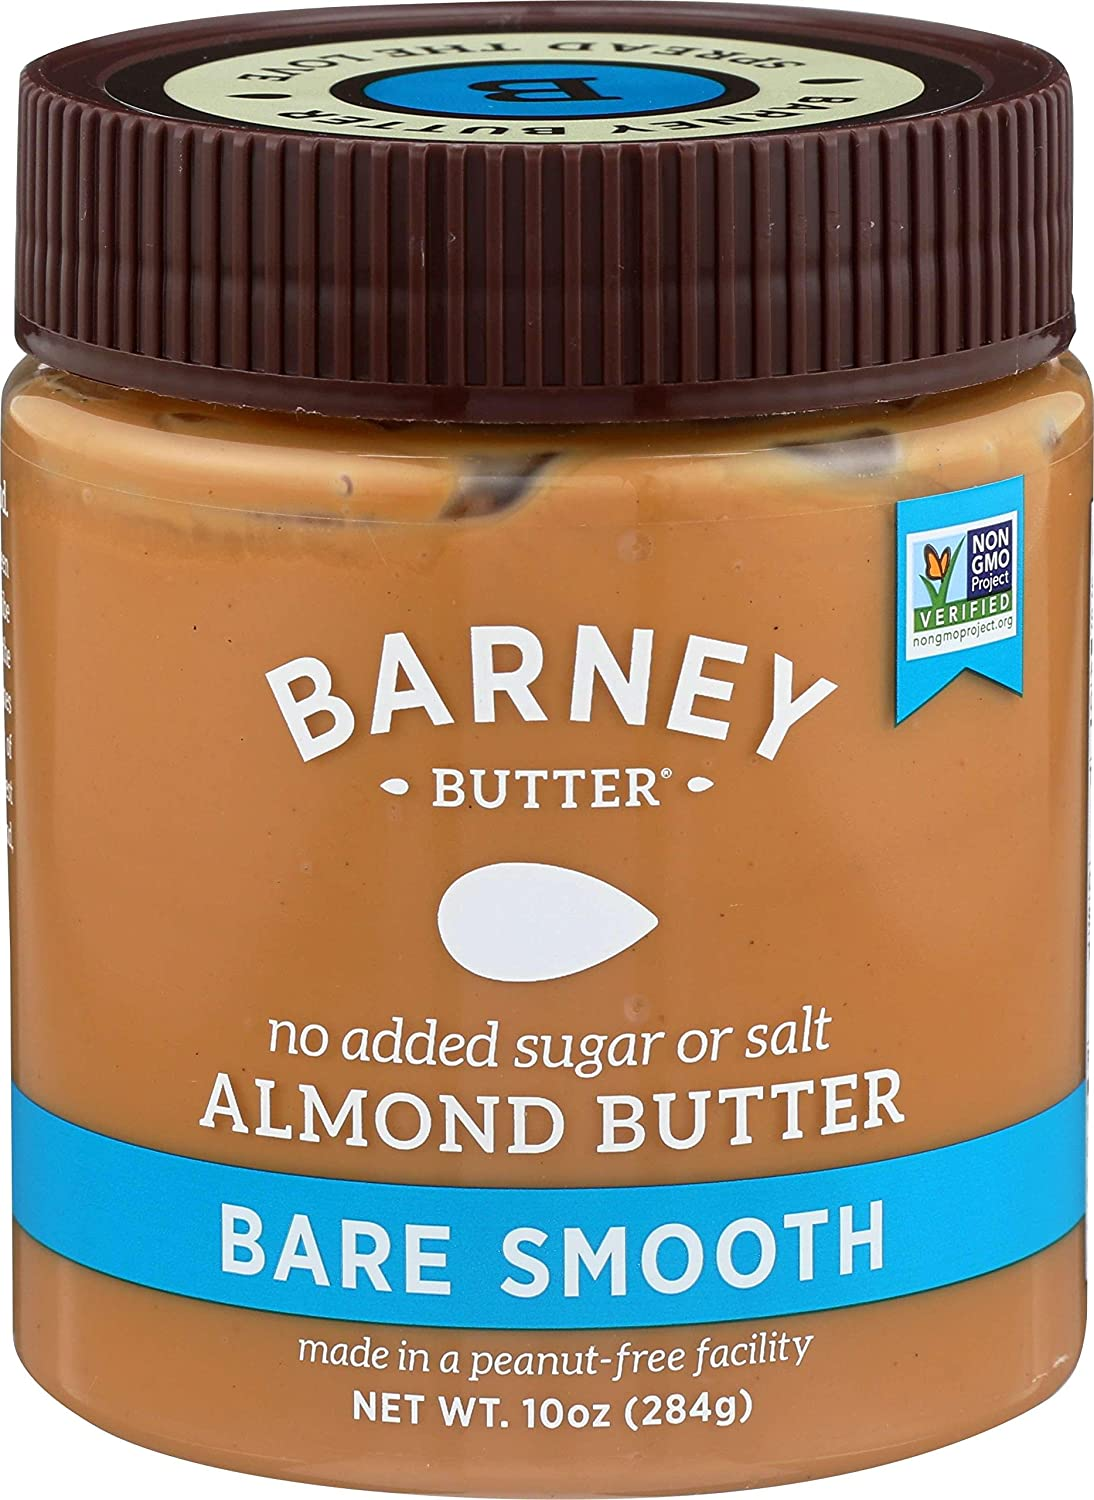 barney butter almond butter bare smooth 10 ounce amazon com